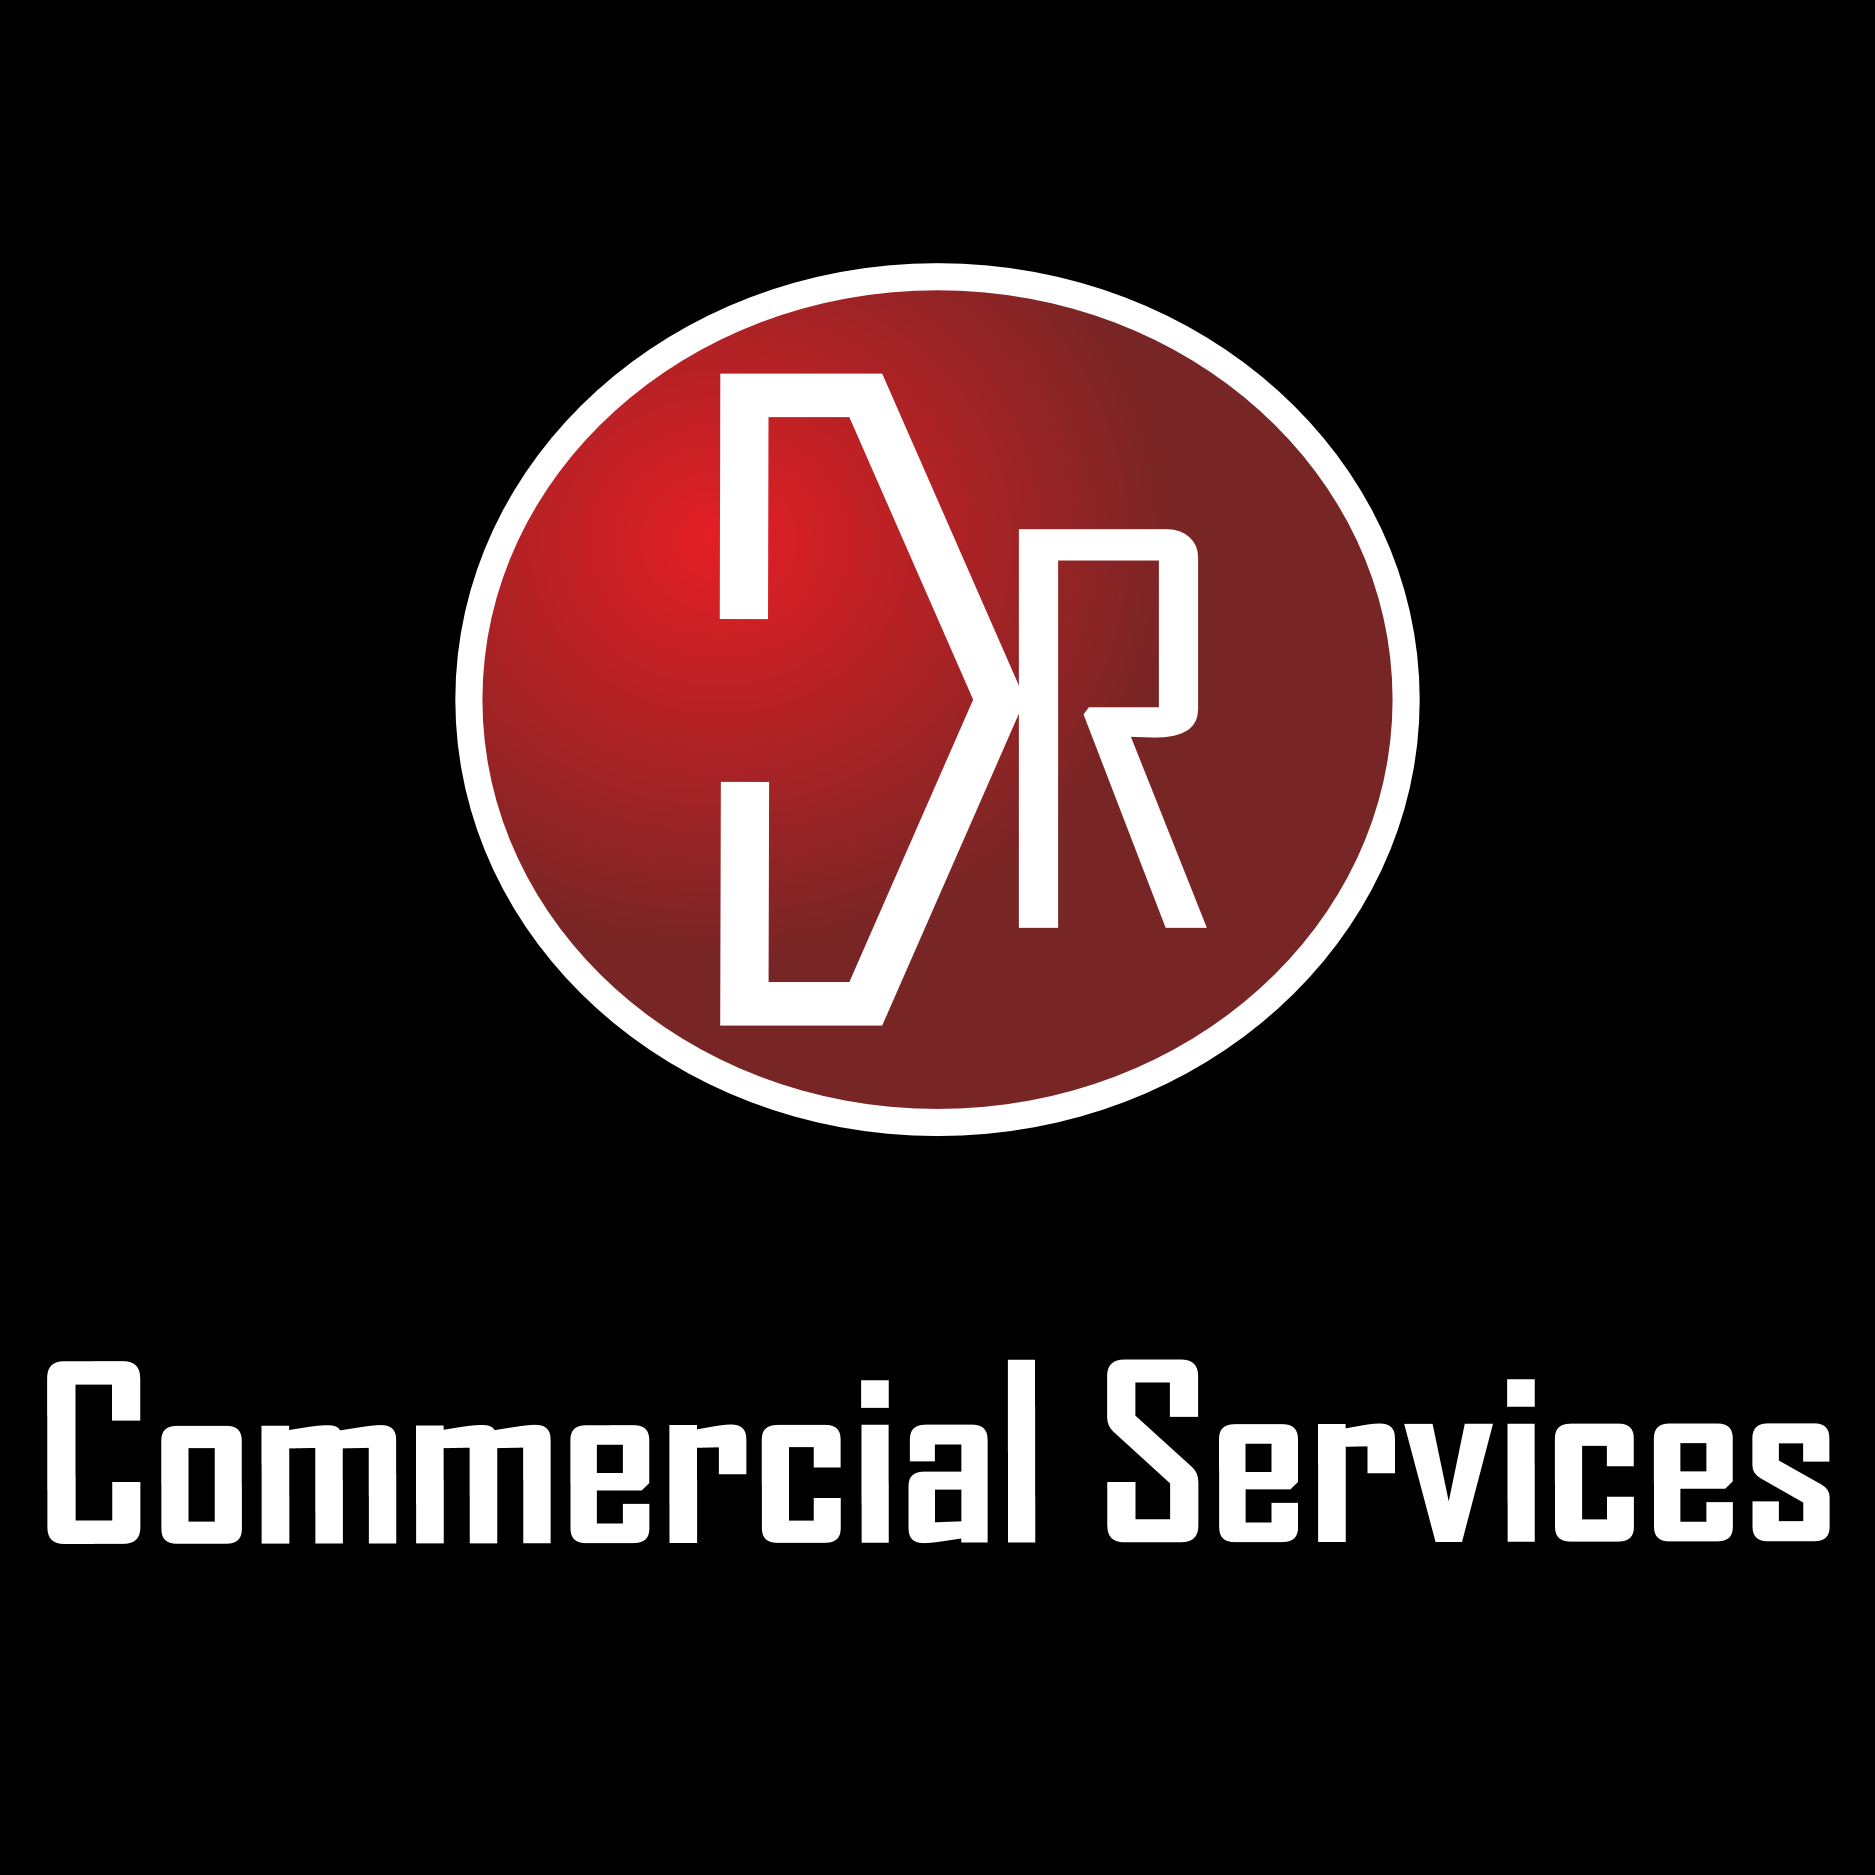 DR Commercial Services